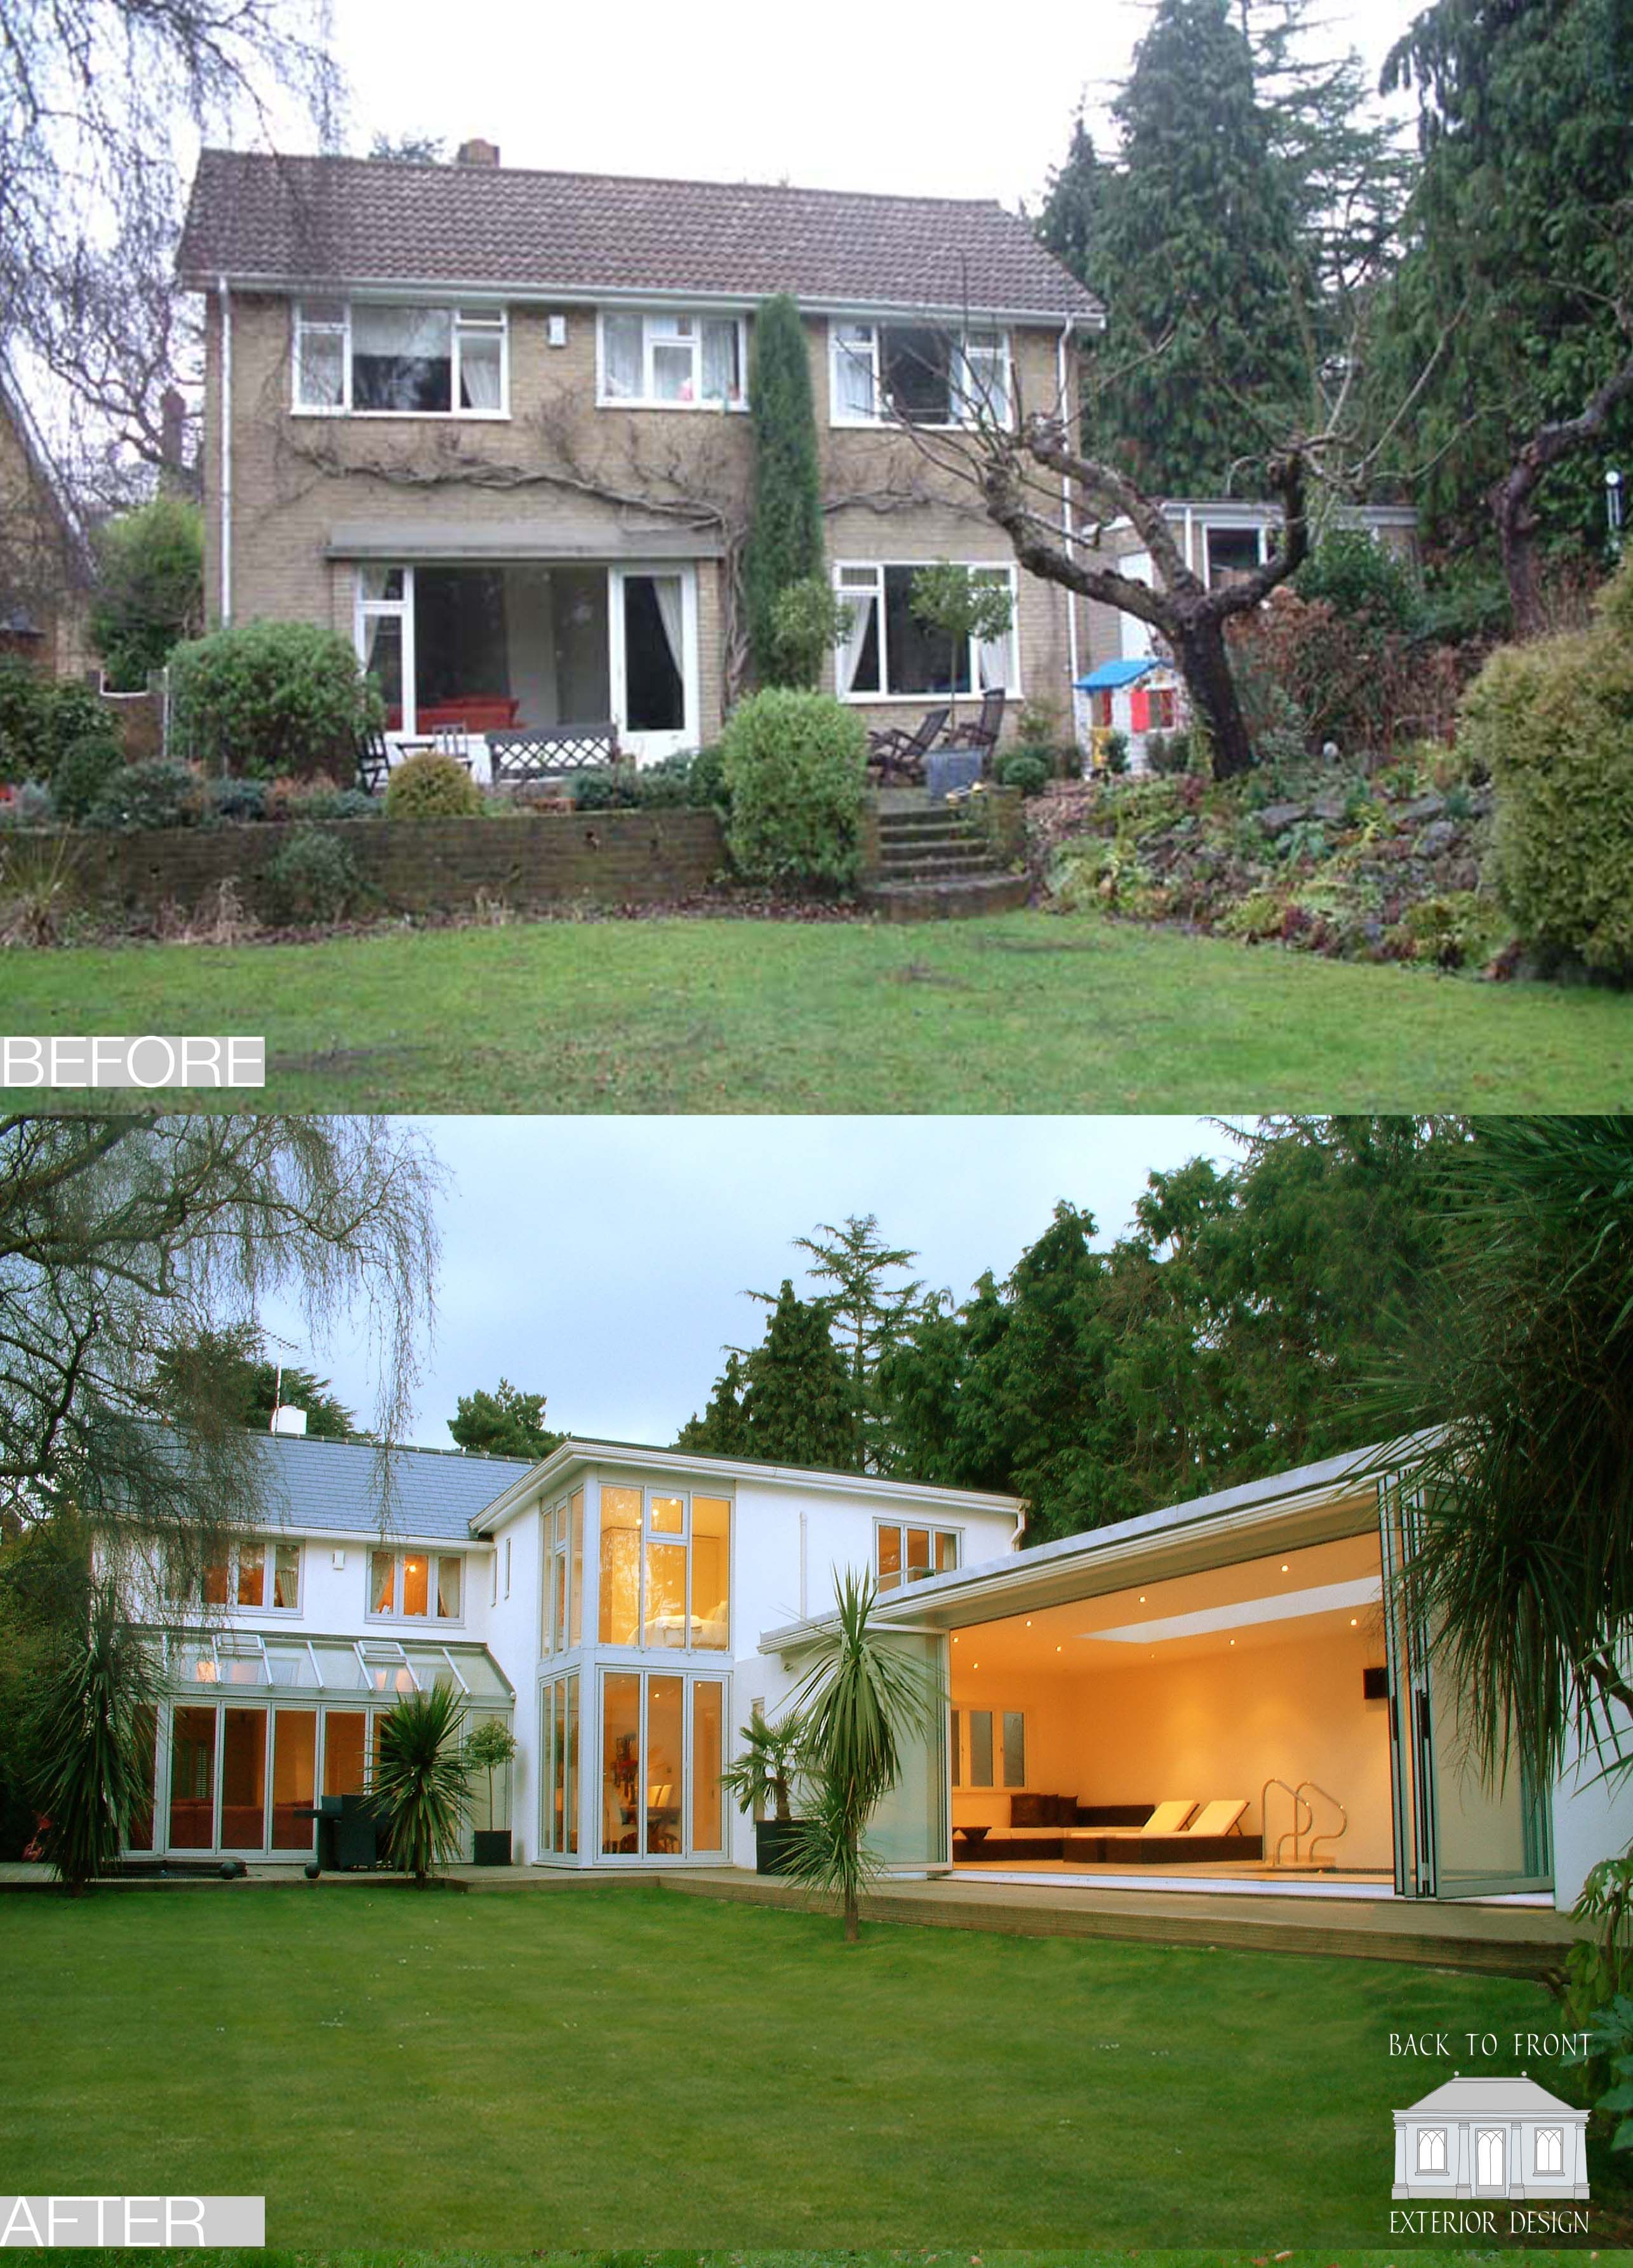 1960 S Exterior Transformation By Back To Front Exterior Design